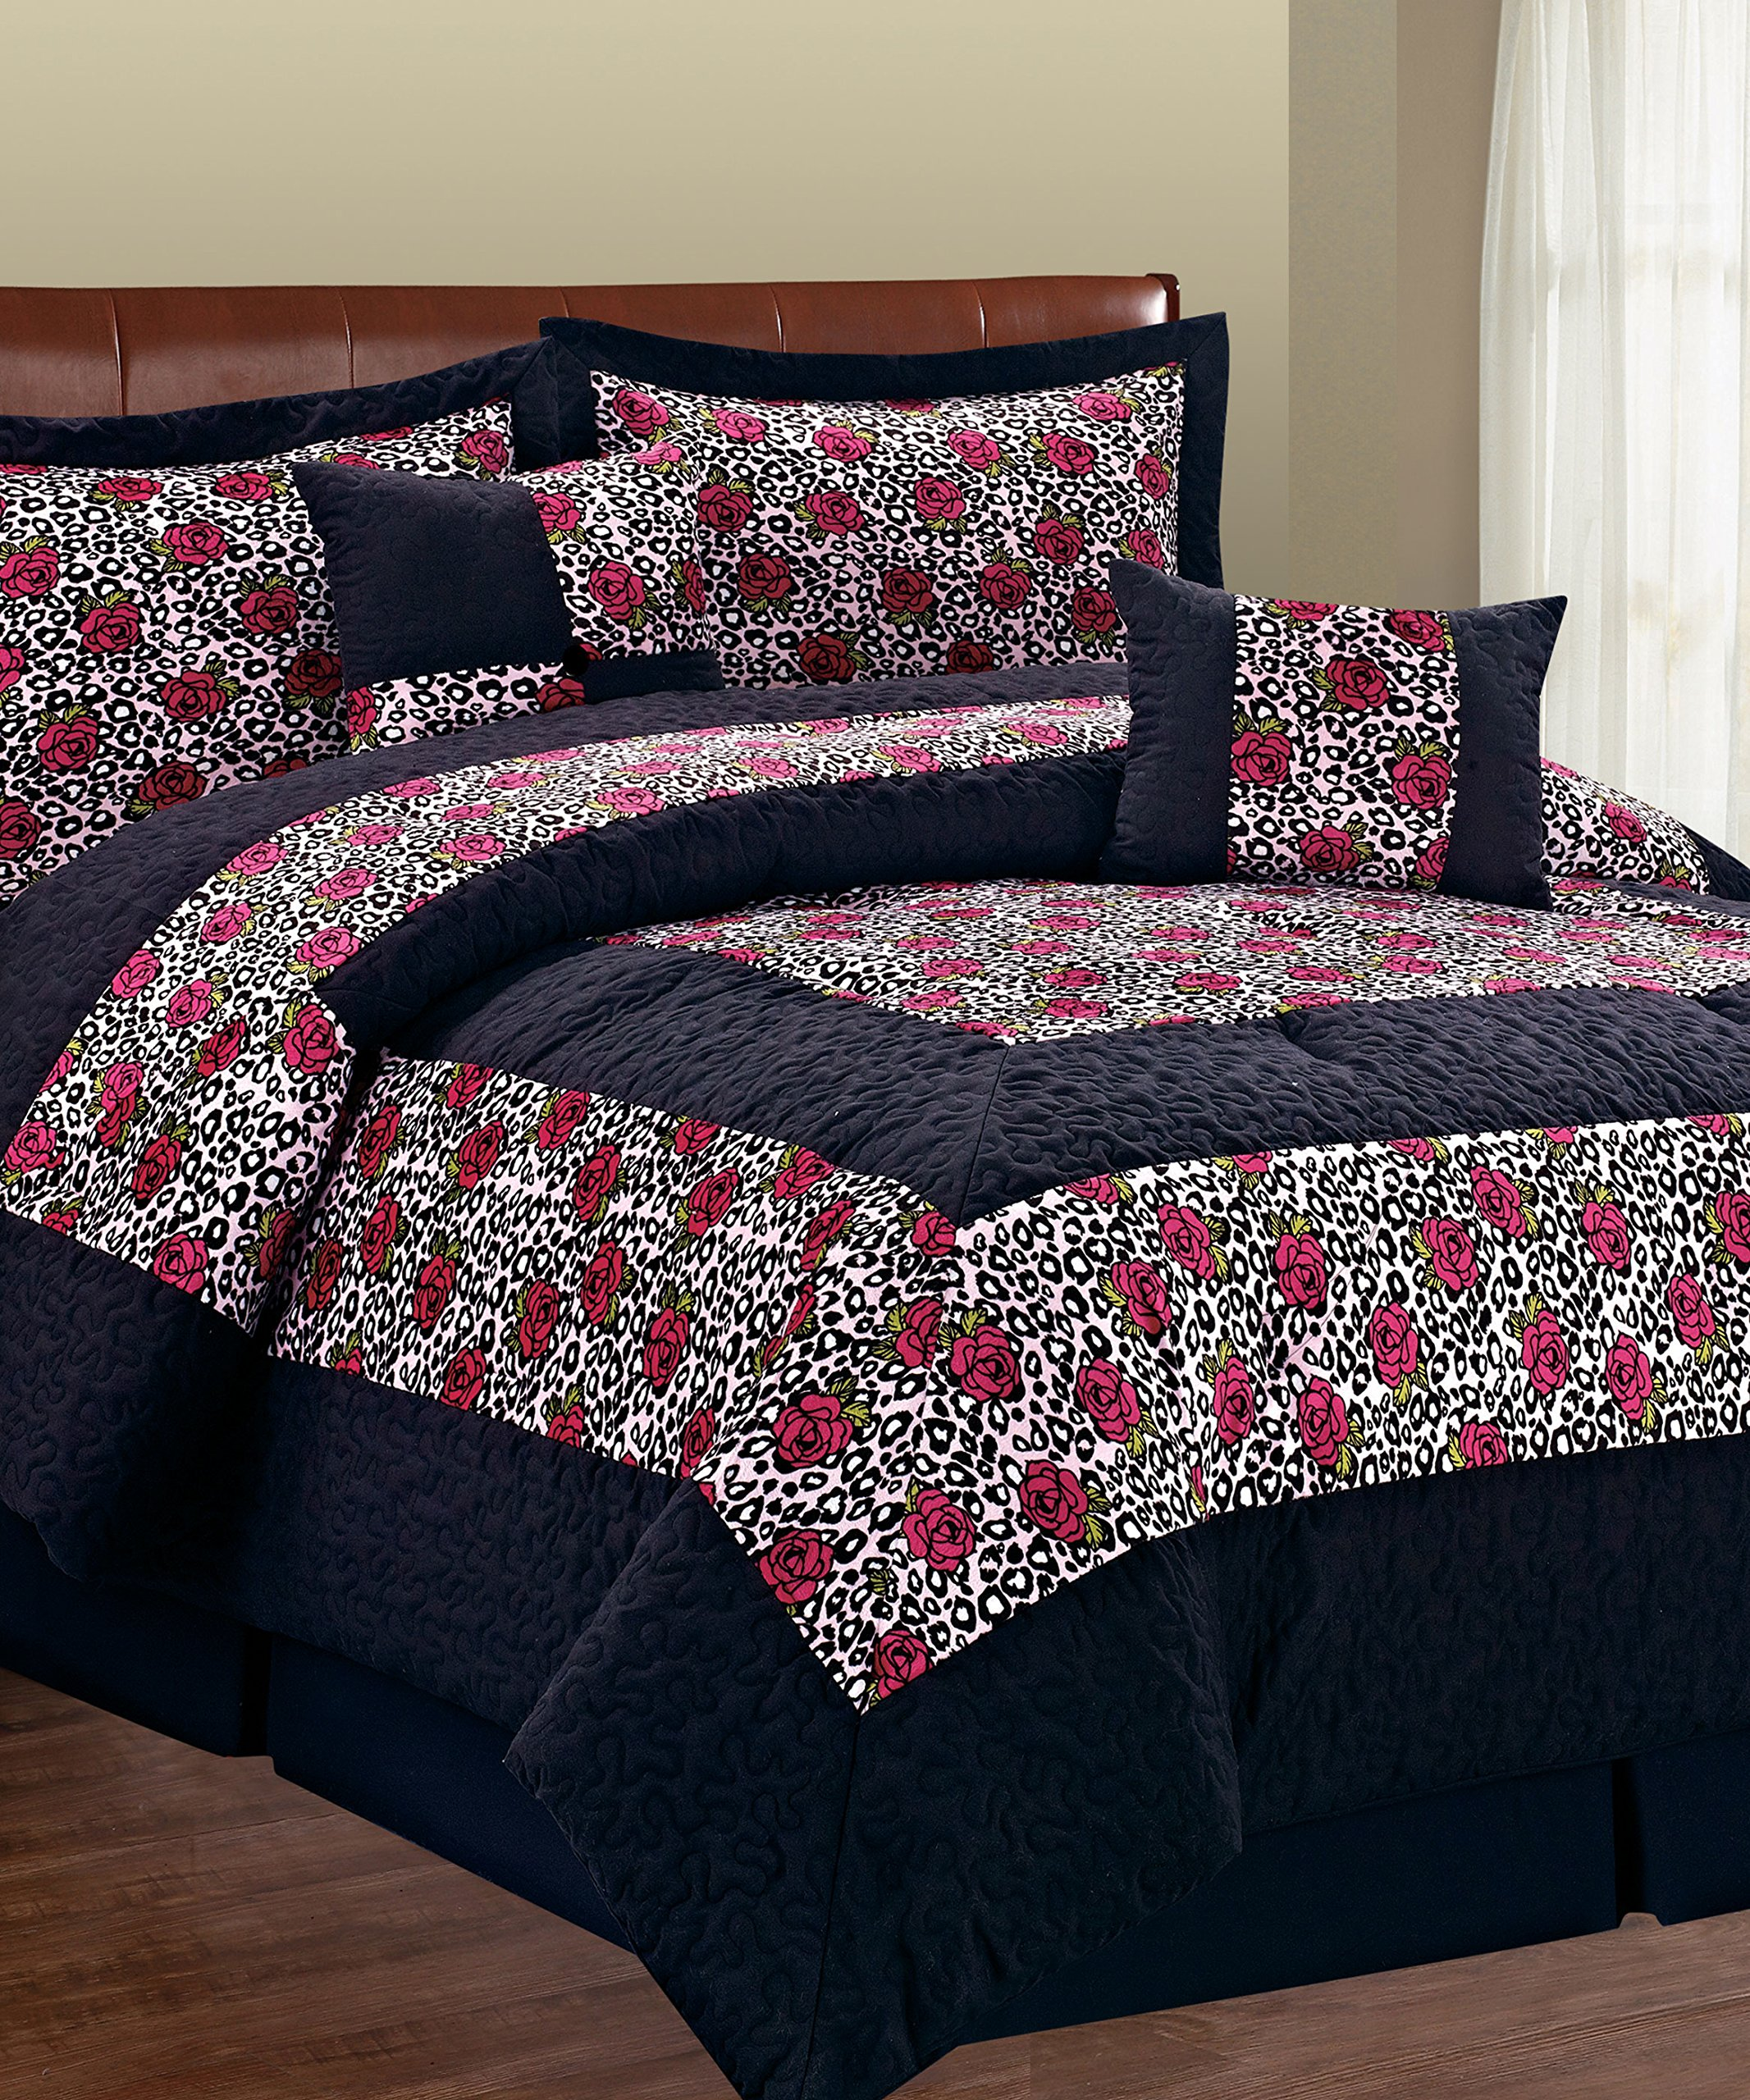 BNF Home Serenta 6 Piece Animal Style Bed in a Bag Set, King, Leopard Flower